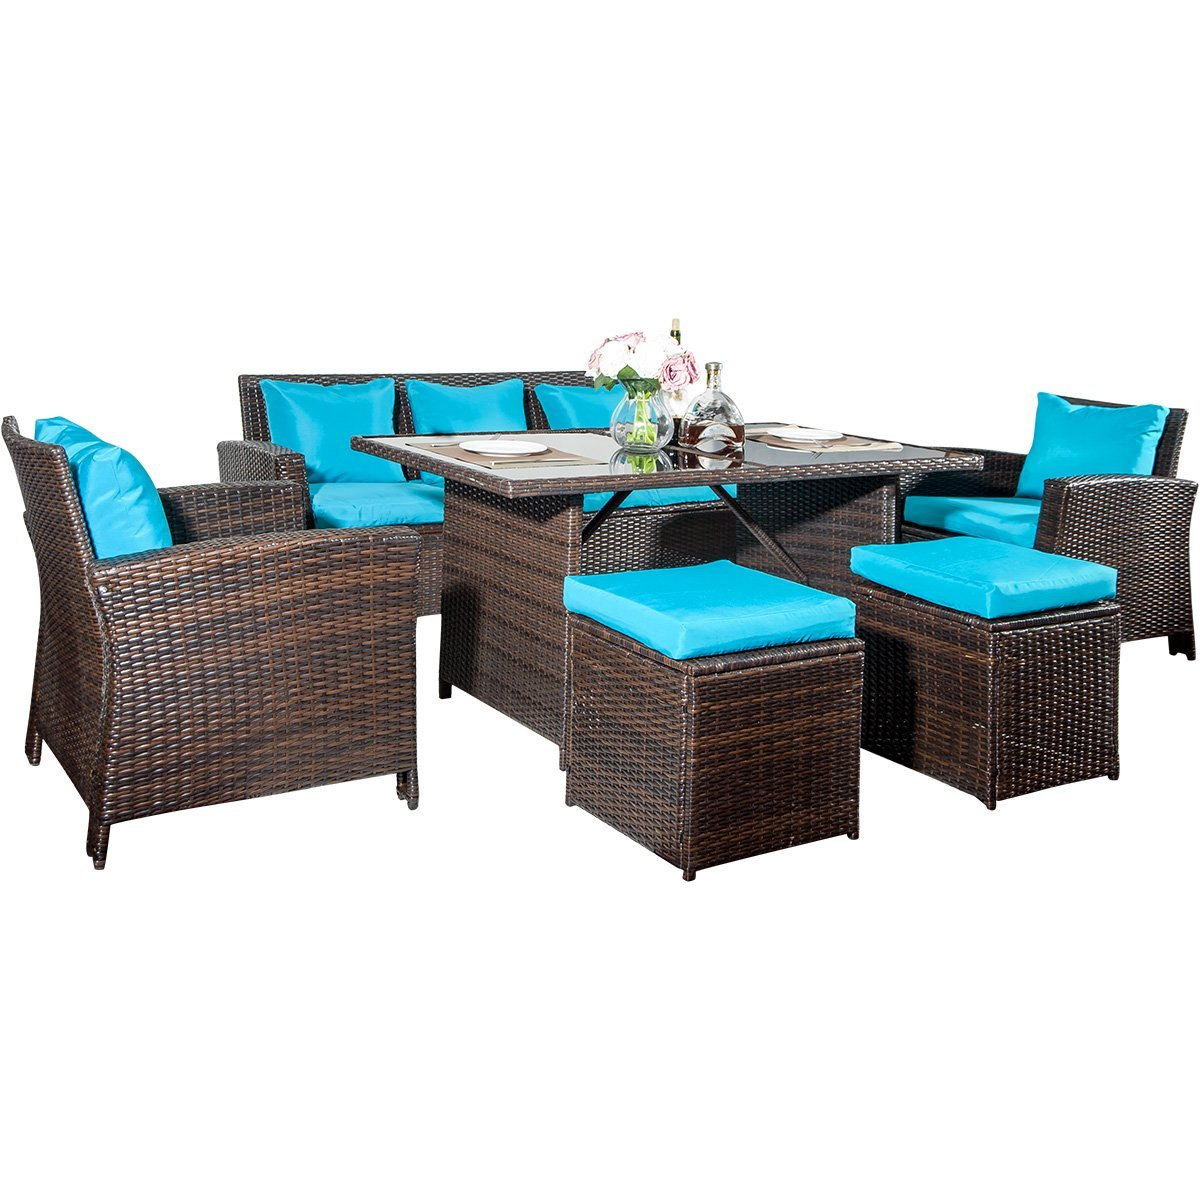 Luxury Furniture Review: Merax 6- Piece Patio Furniture ... on Fine Living Patio Set id=94853